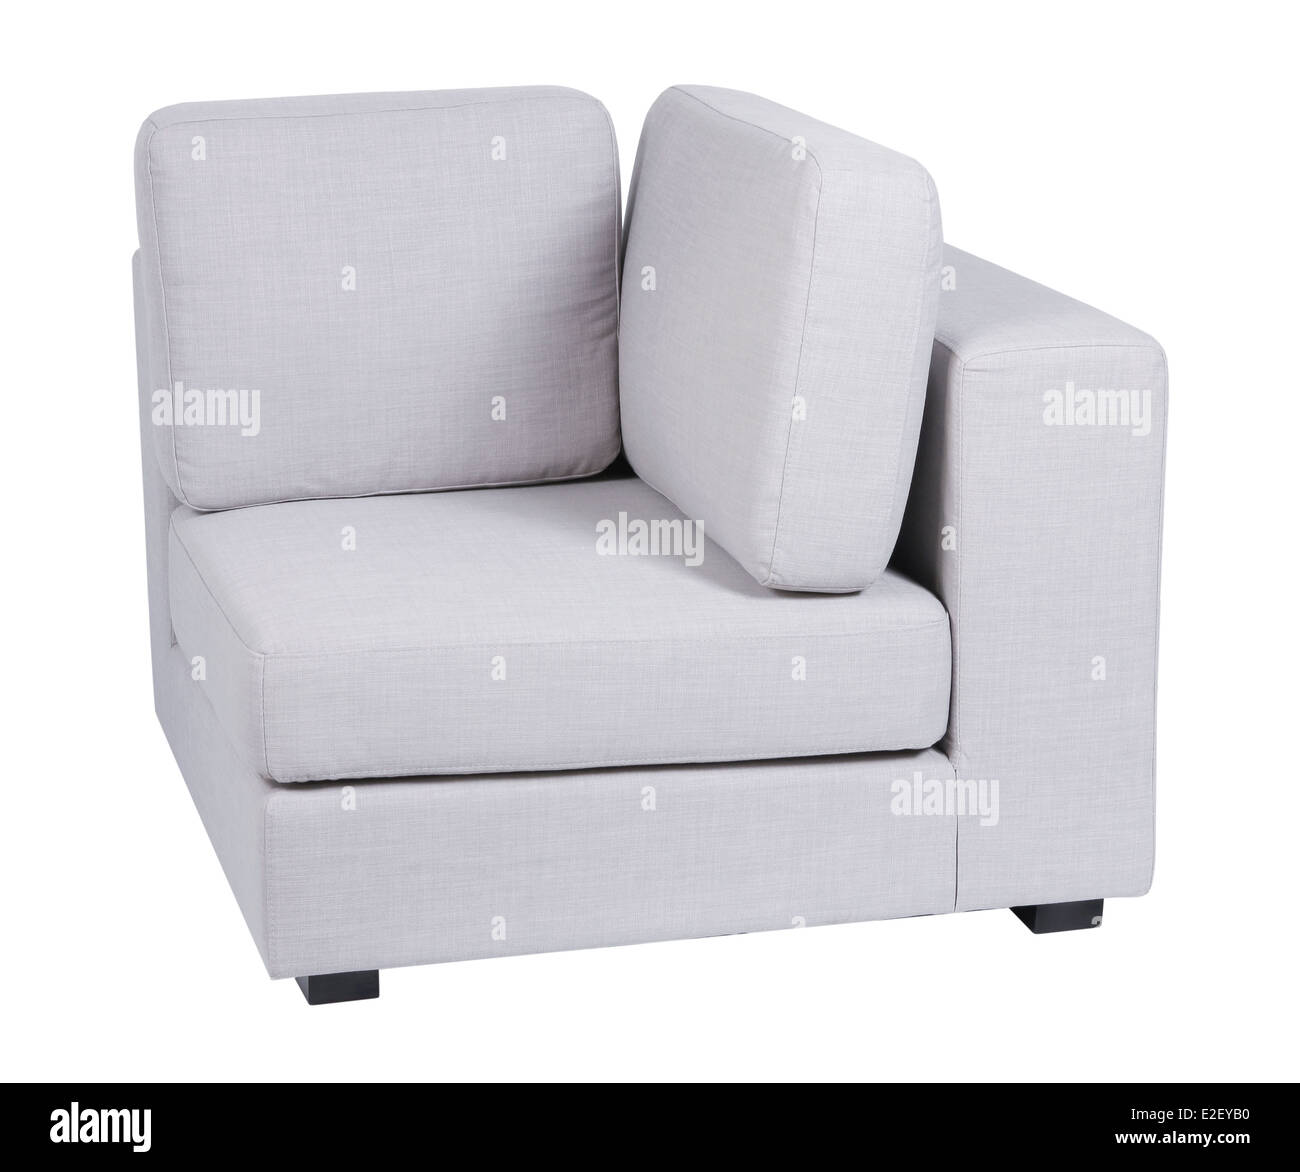 Couch Sessel Einzelnes Seater Sofa Sessel Stockfoto Bild 70399588 Alamy